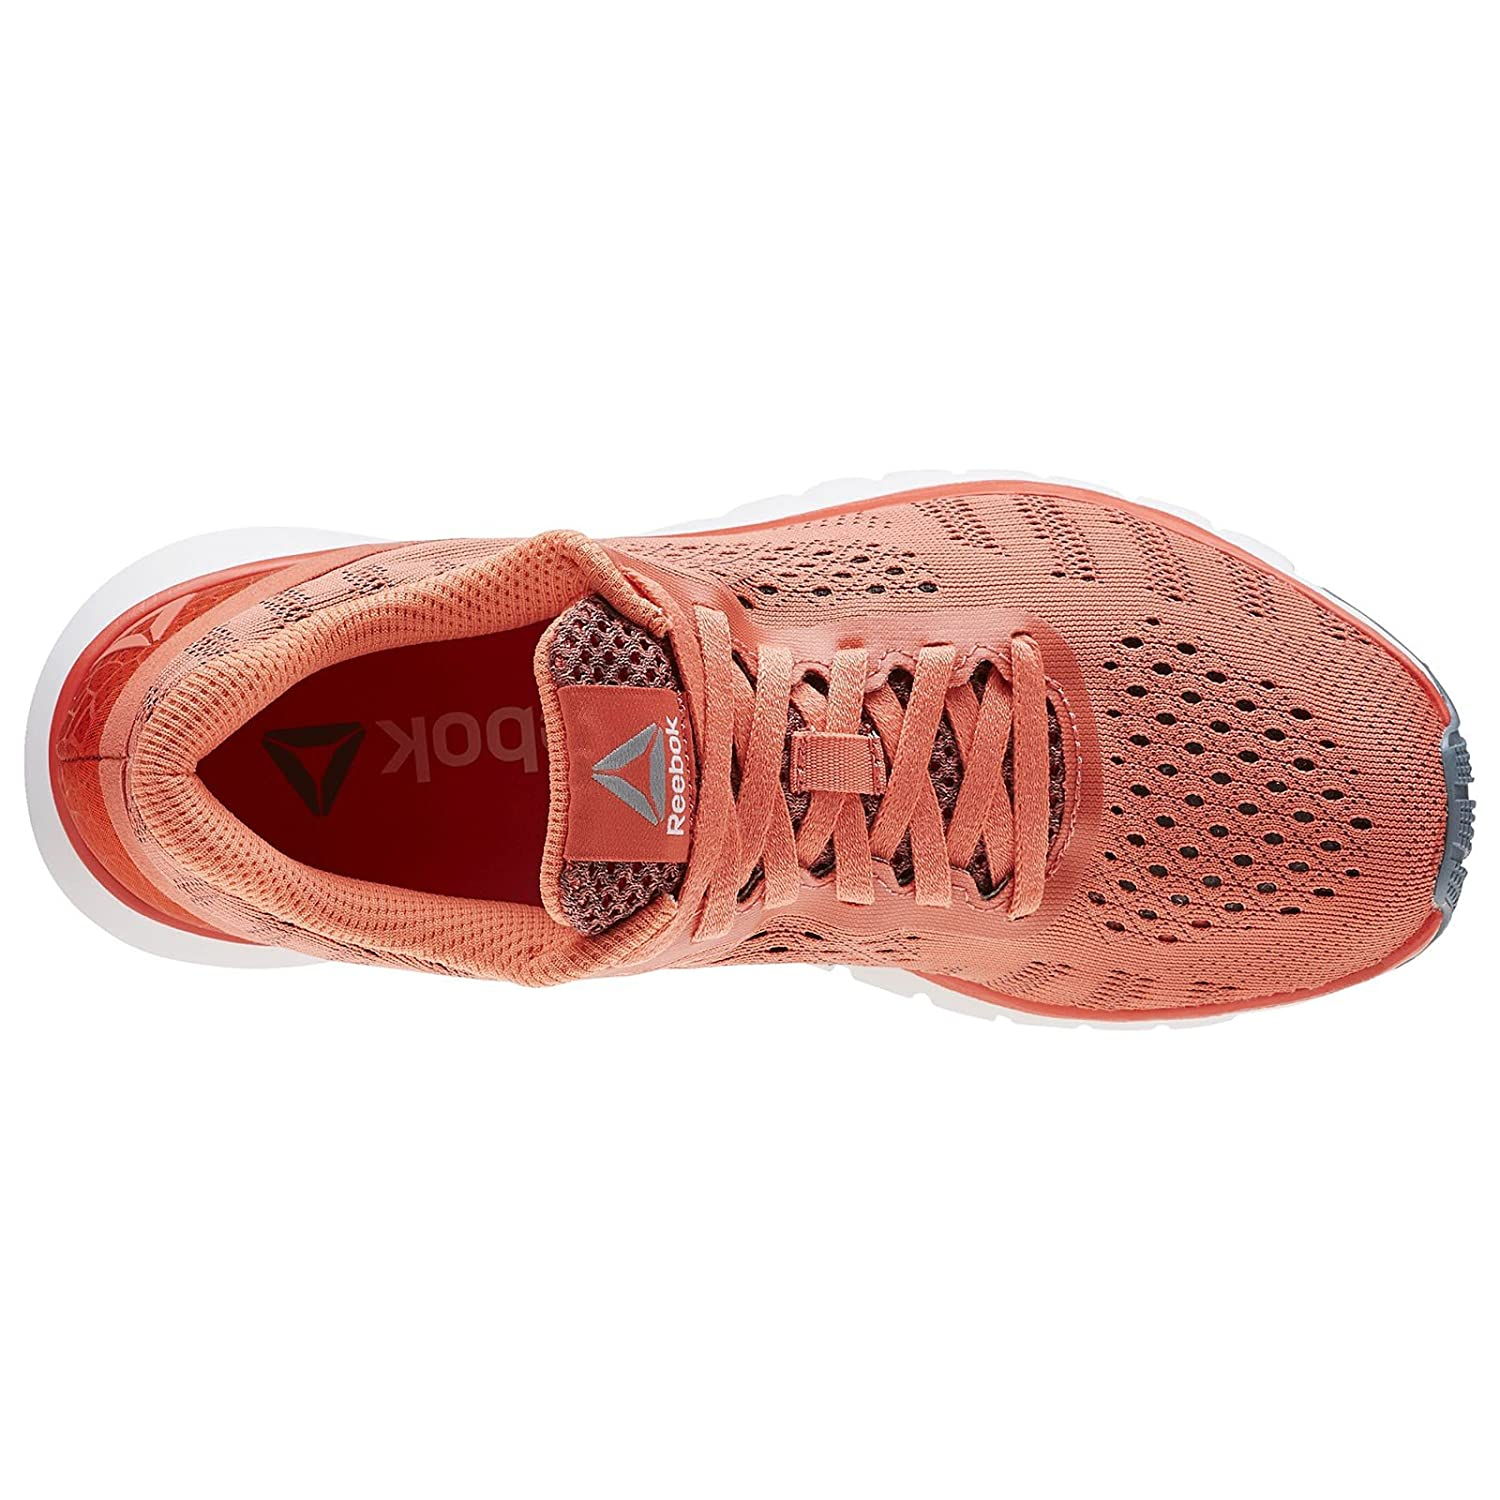 Reebok Print Smooth UltraKnit Womens Running Sport Gym Trainers Fire Coral